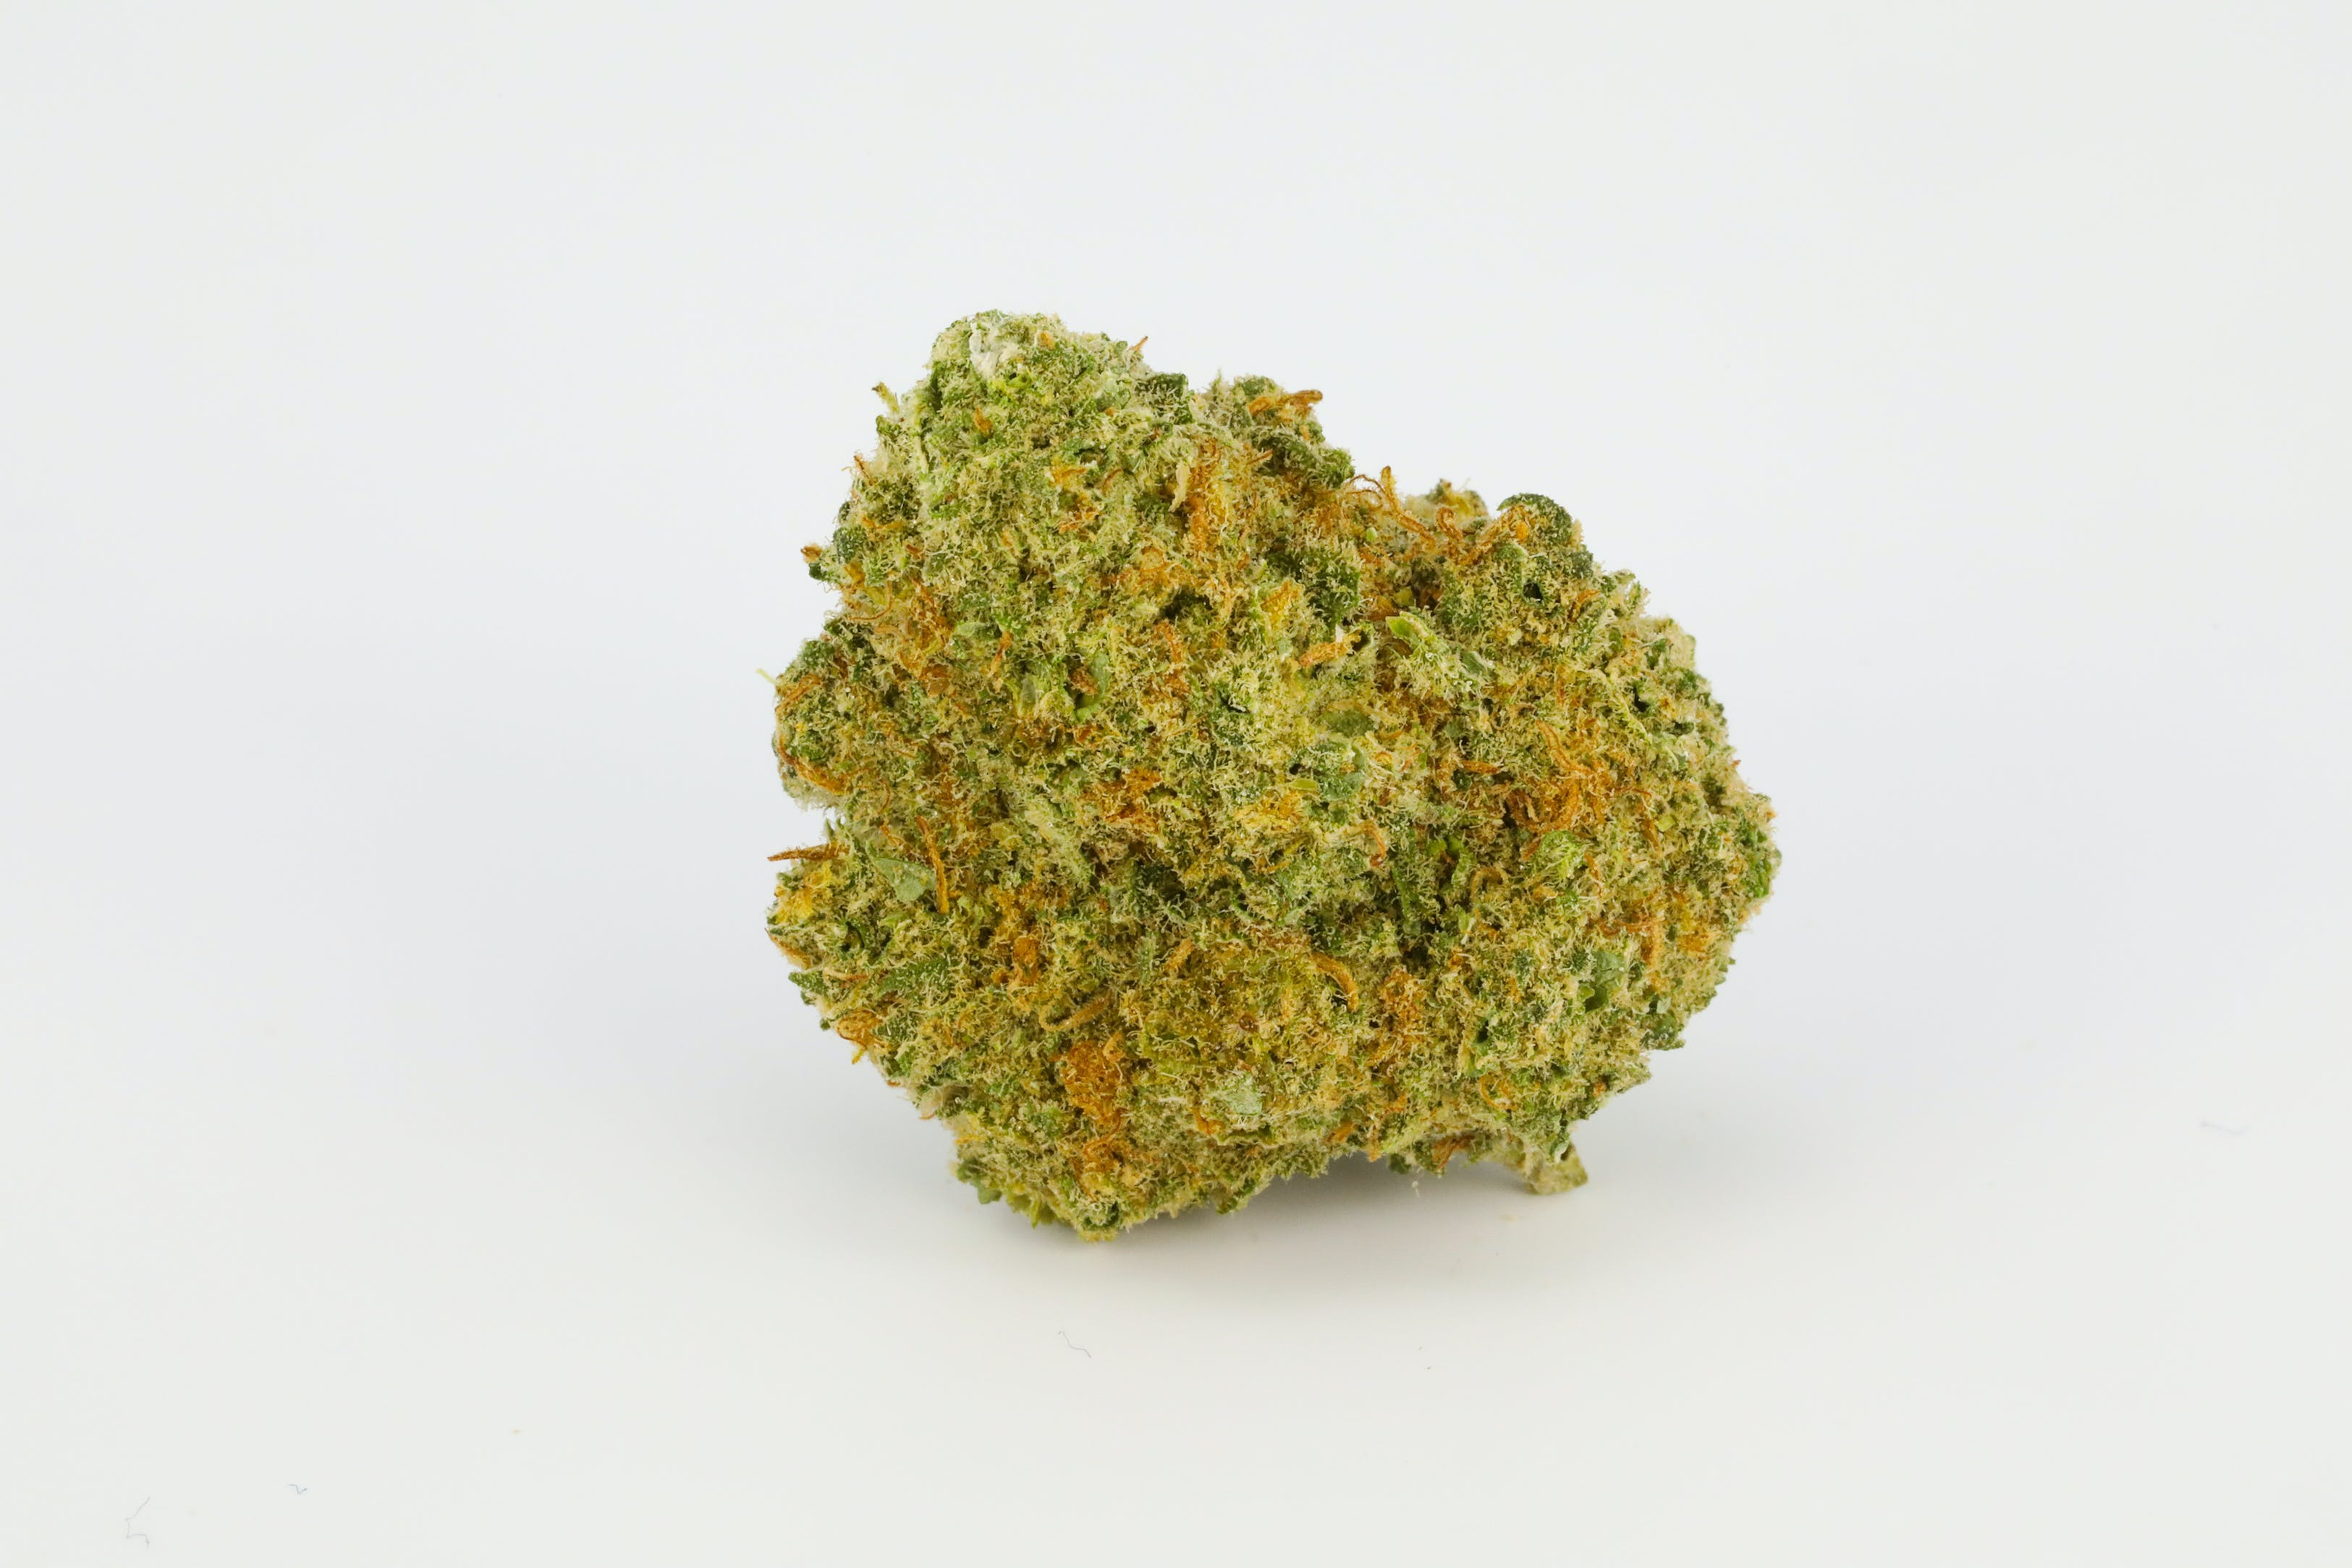 Lemon Alien Dawg Weed; Lemon Alien Dawg Cannabis Strain; Lemon Alien Dawg Hybrid Marijuana Strain